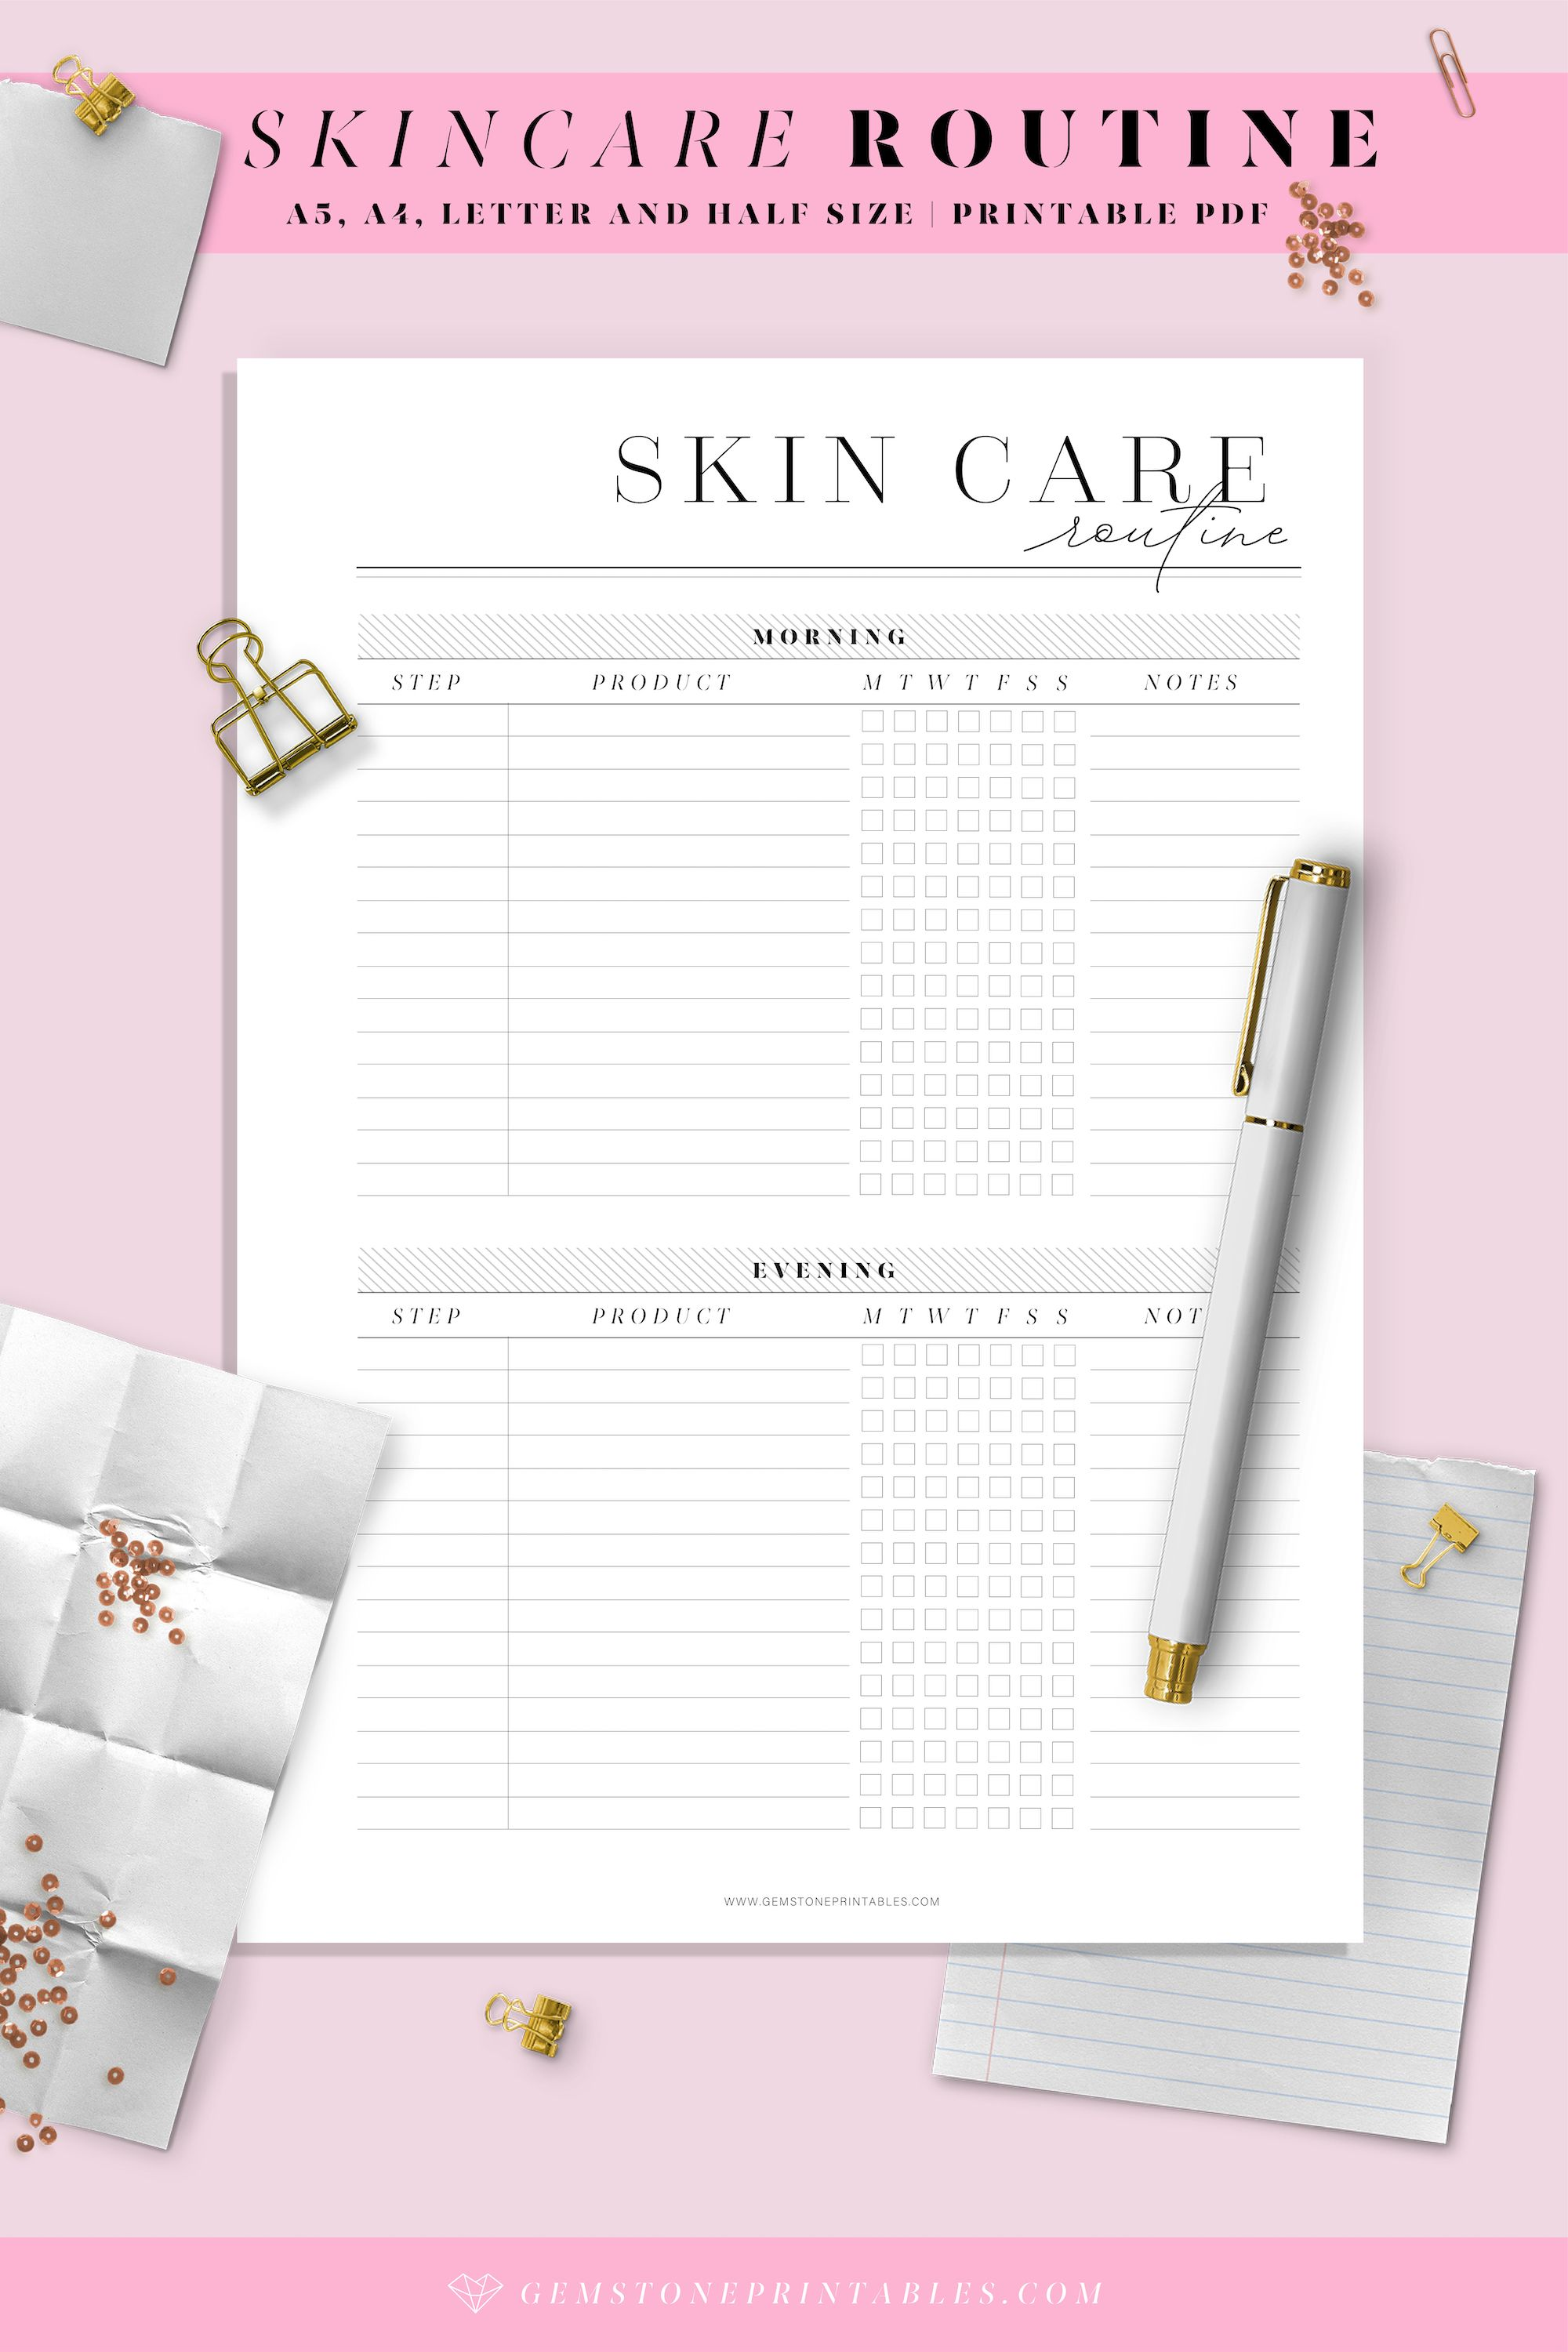 Skincare Routine Planner Printable Planner Template Beauty Planner Template Recipe Cards Template Recipe Cards Printable Templates Printable Planner